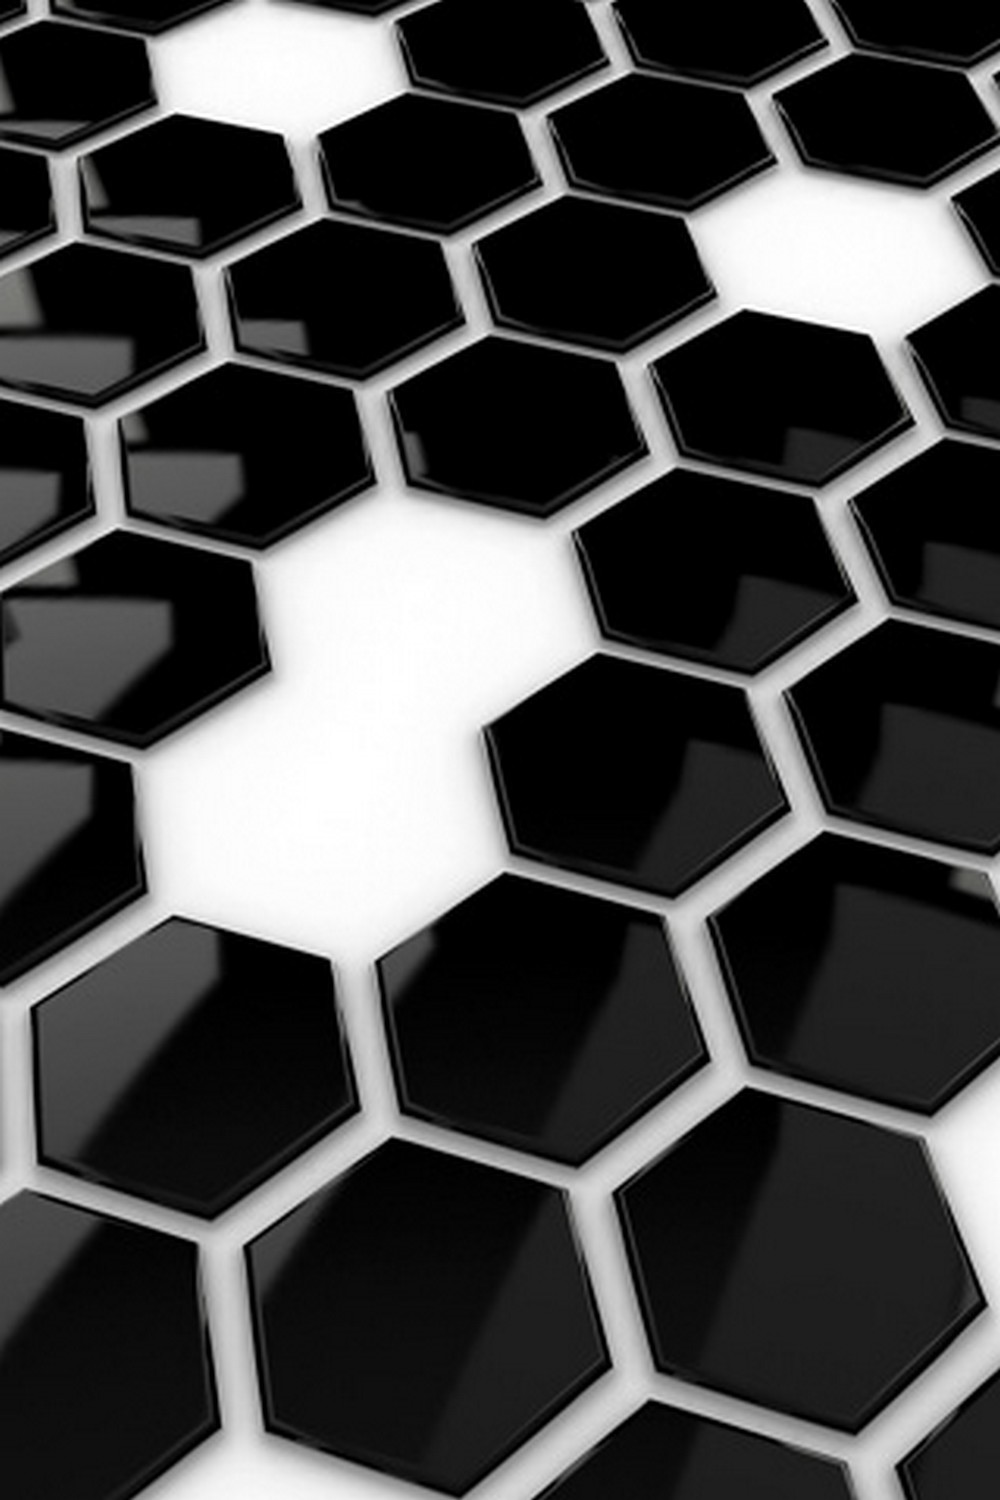 Black hive tiles android wallpaper for Black 3d tiles wallpaper